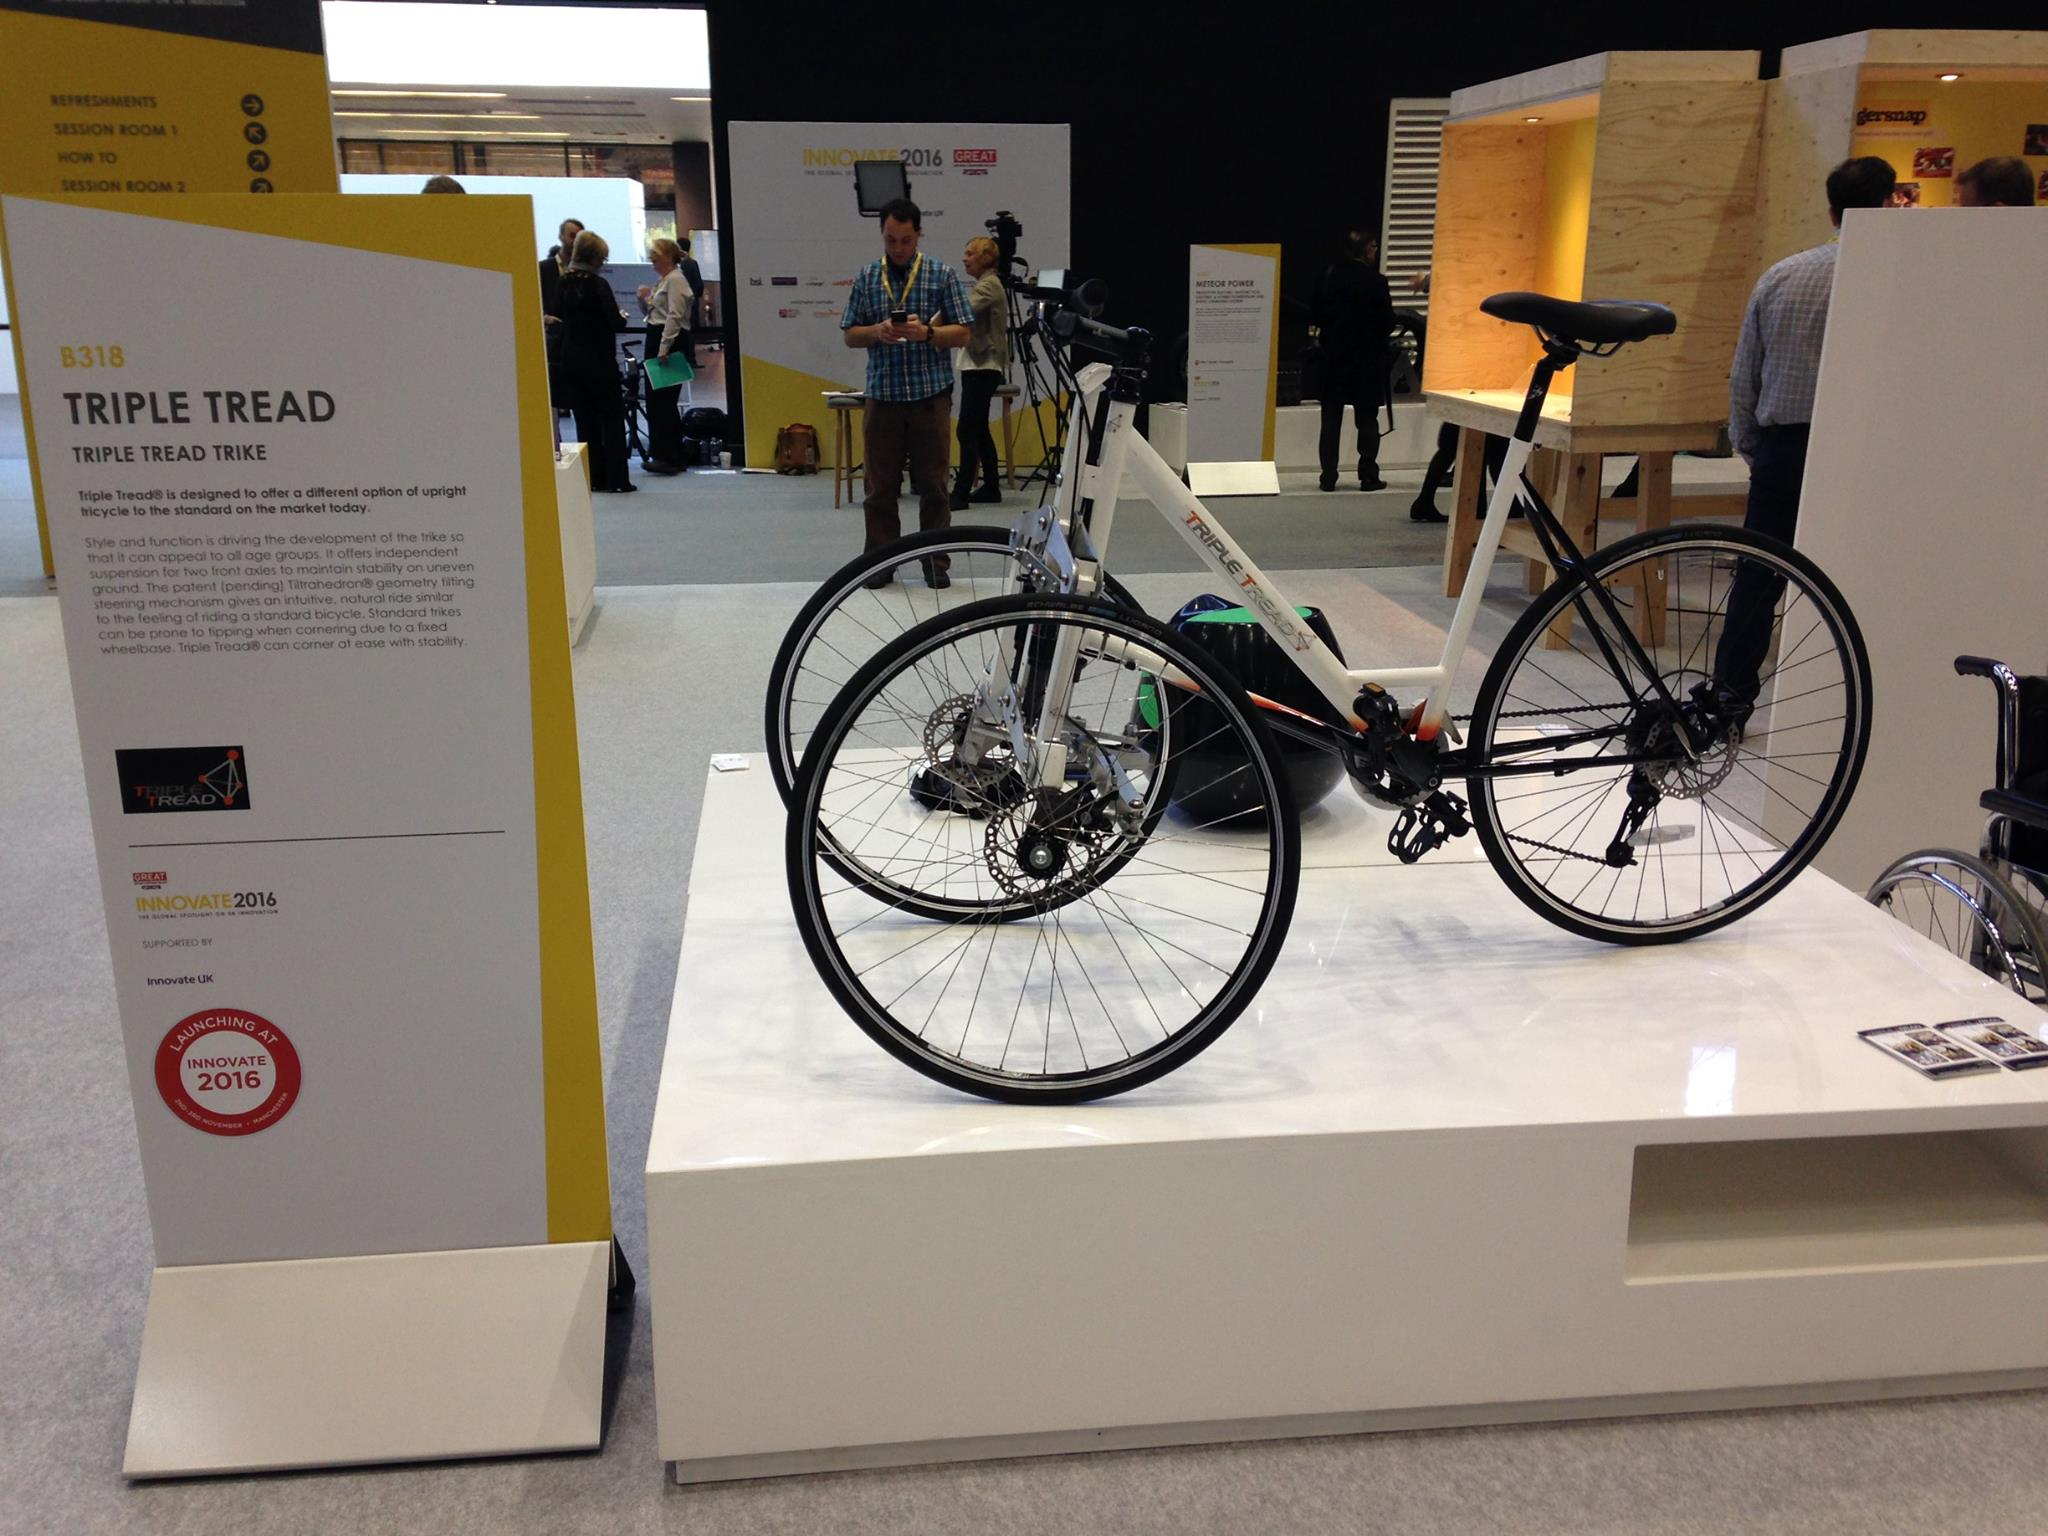 trike-in-showcase-exhibition